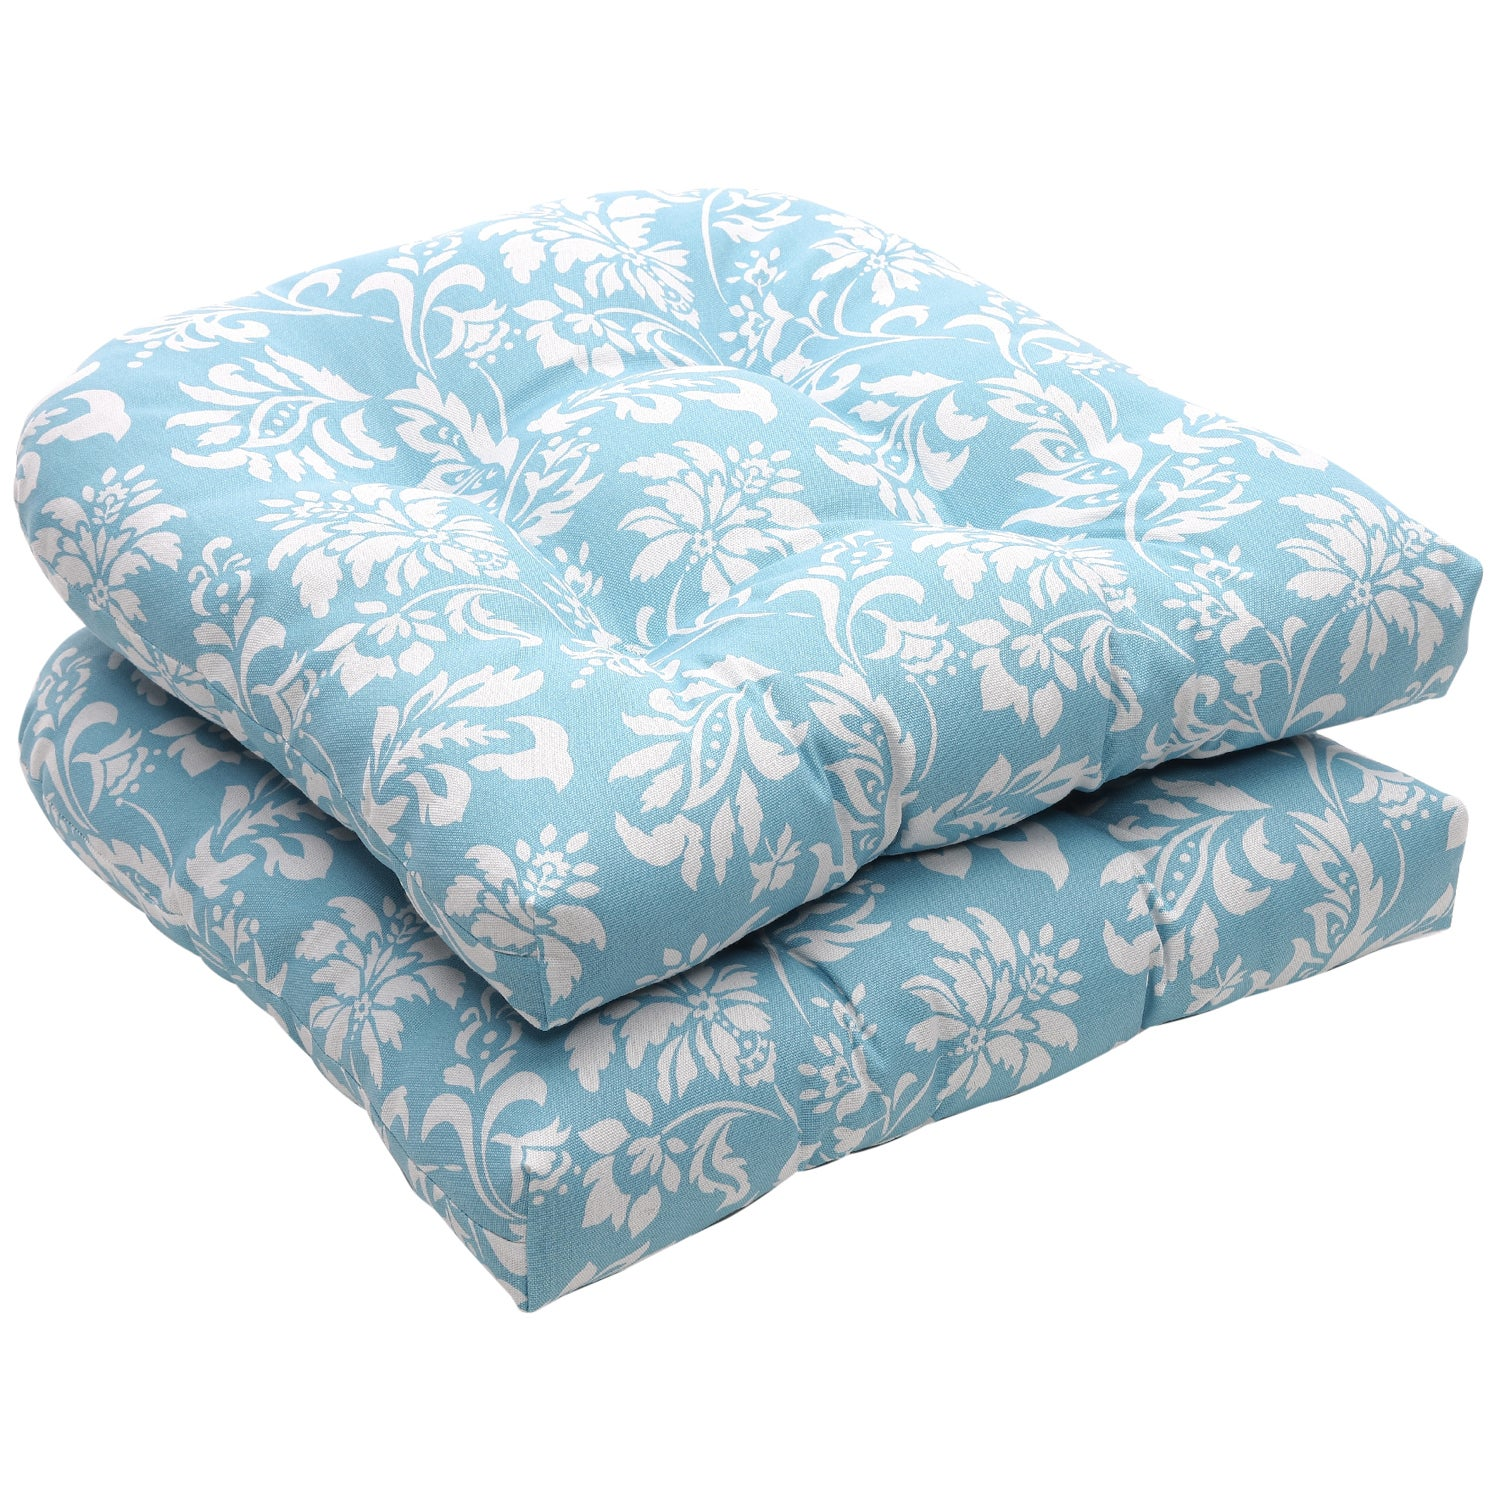 Outdoor Blue And White Floral Wicker Seat Cushions Set Of